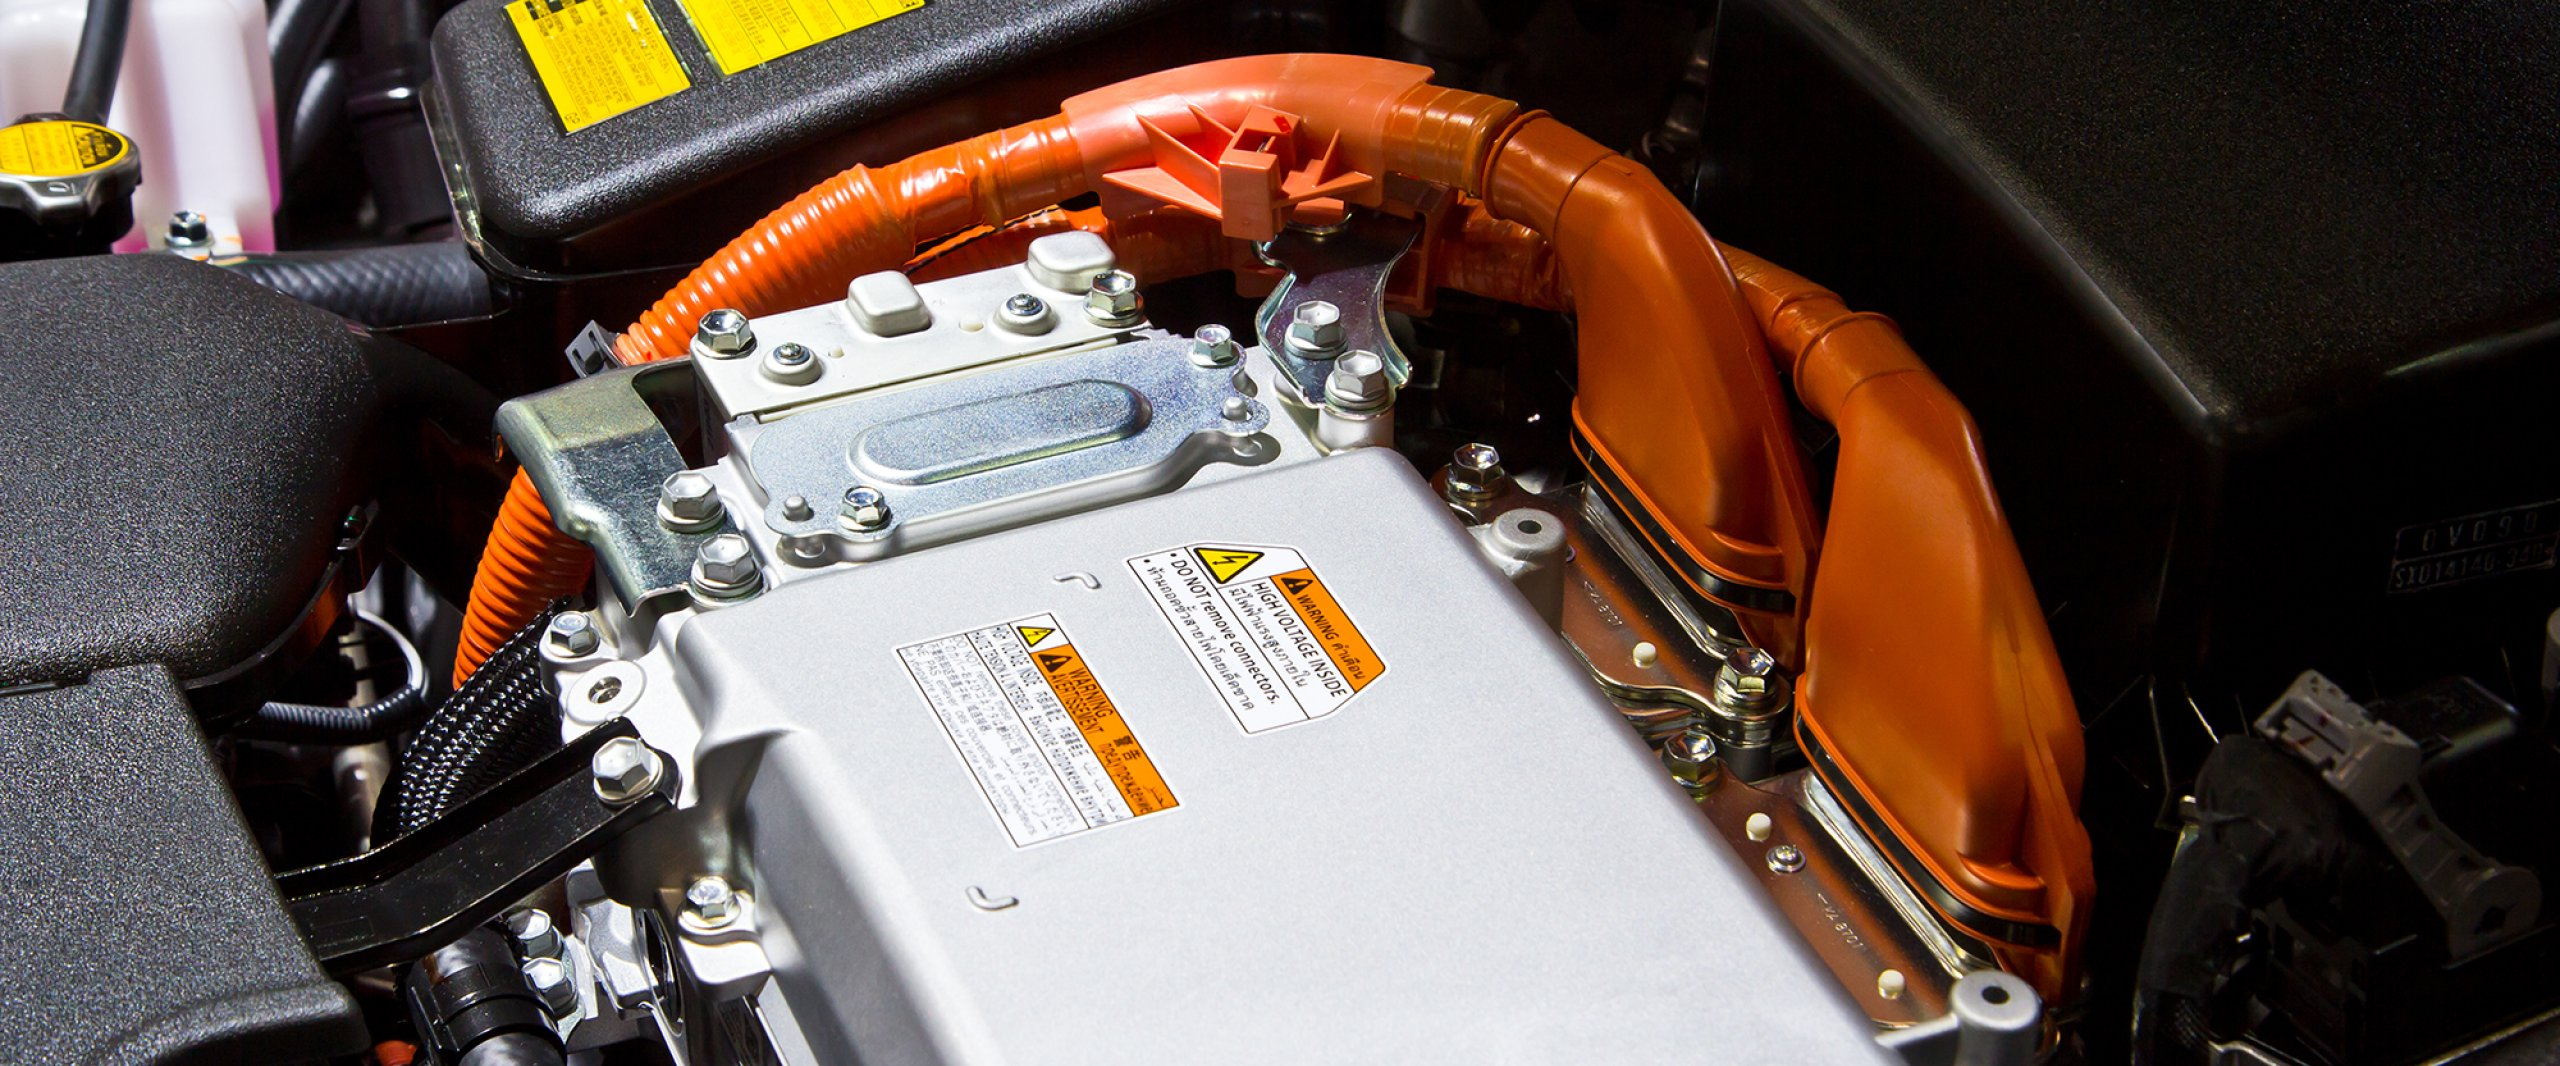 Battery and hybrid Engine_Quelle: shutterstock_apiguide_121026346